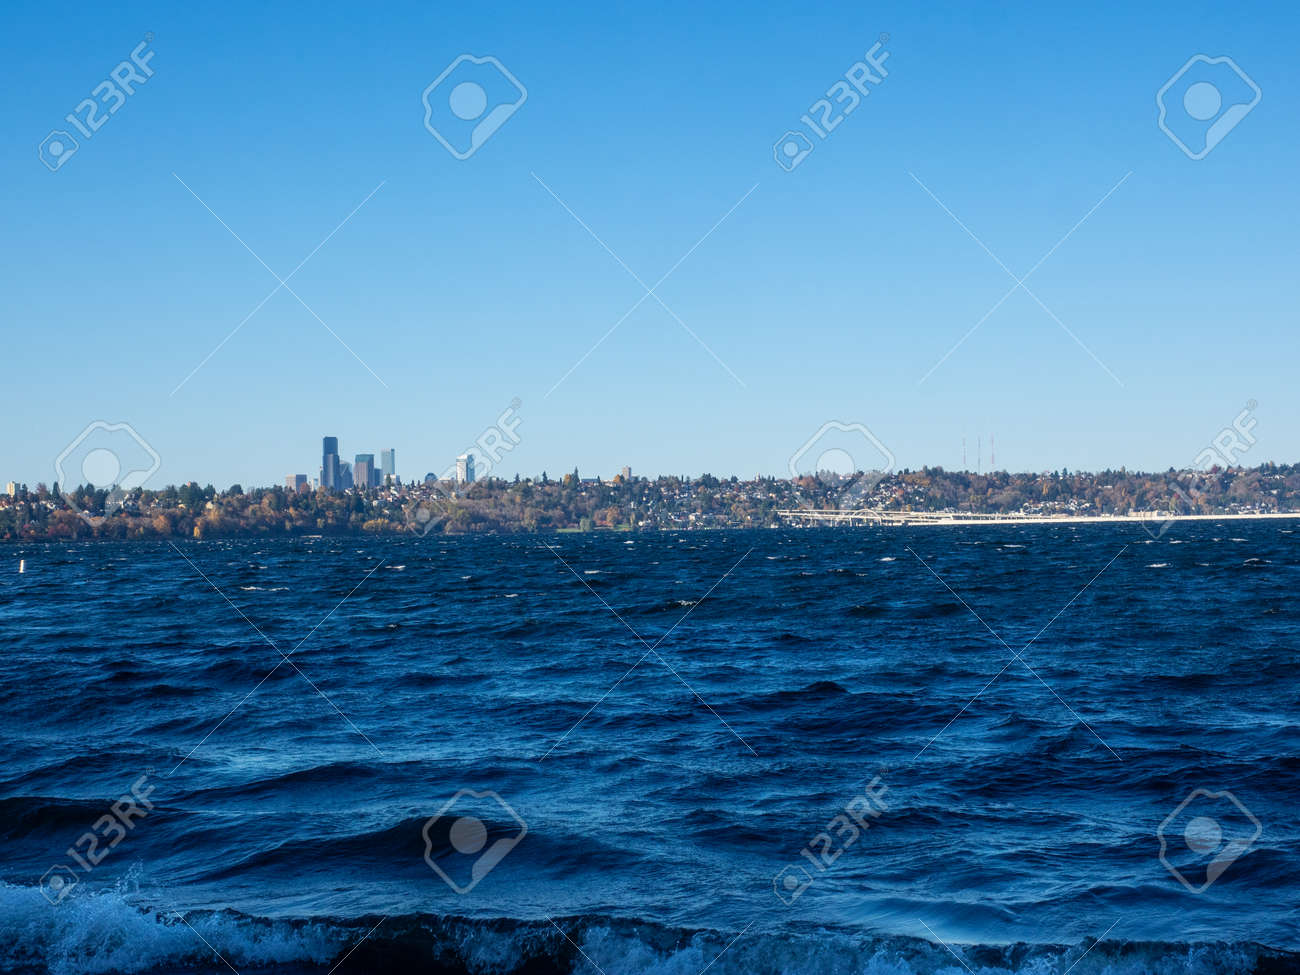 Seward Park is a municipal park in Seattle, Washington, United States. Located in the city neighborhood of the same name, it covers 300 acres (120 ha; 0.47 sq mi). The park occupies all of Bailey Peninsula, a forested peninsula that juts into Lake Washington. - 168590893